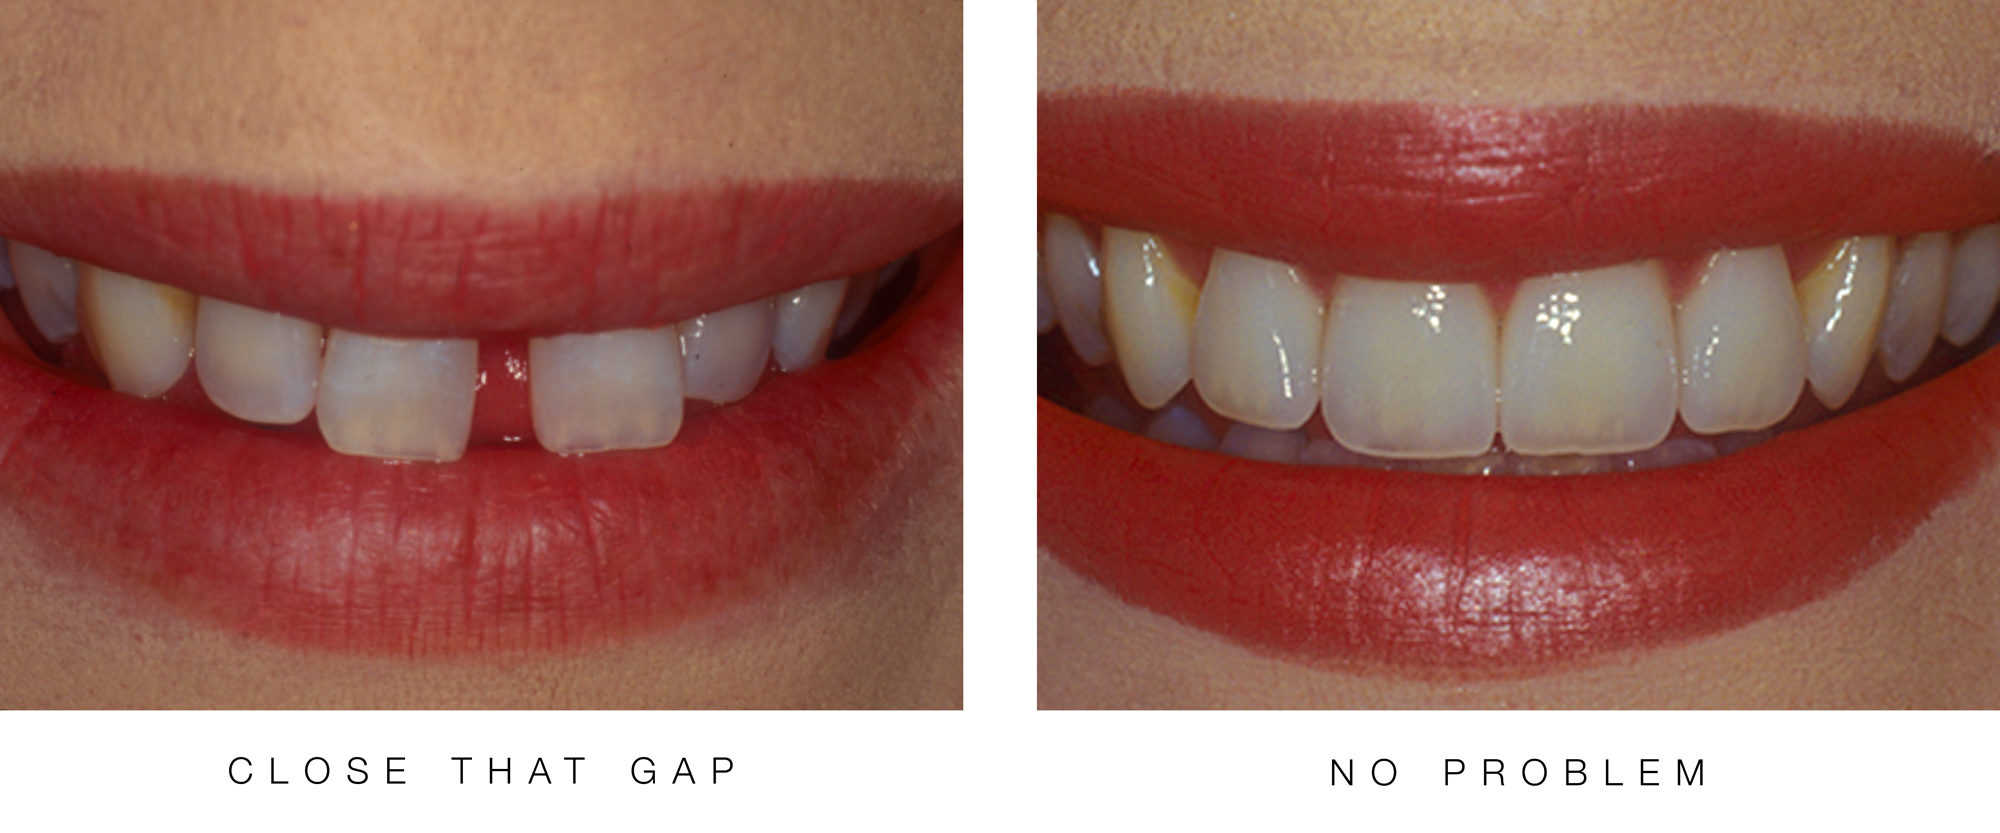 Close-That-Gap---No-Problem by Ron Winter of Fabulous Teeth 2 Seaside Dental Laboratory & Clinic .jpg